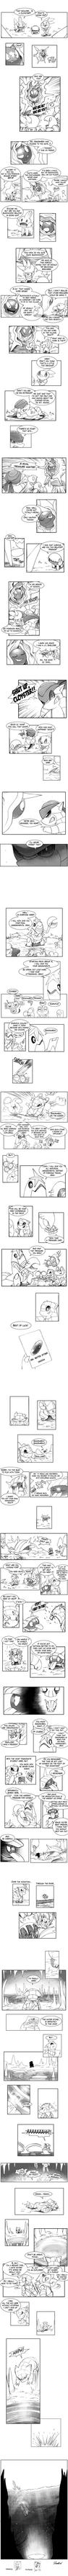 PMD Comic: Blue Rescue Team 4-3 by xofks12